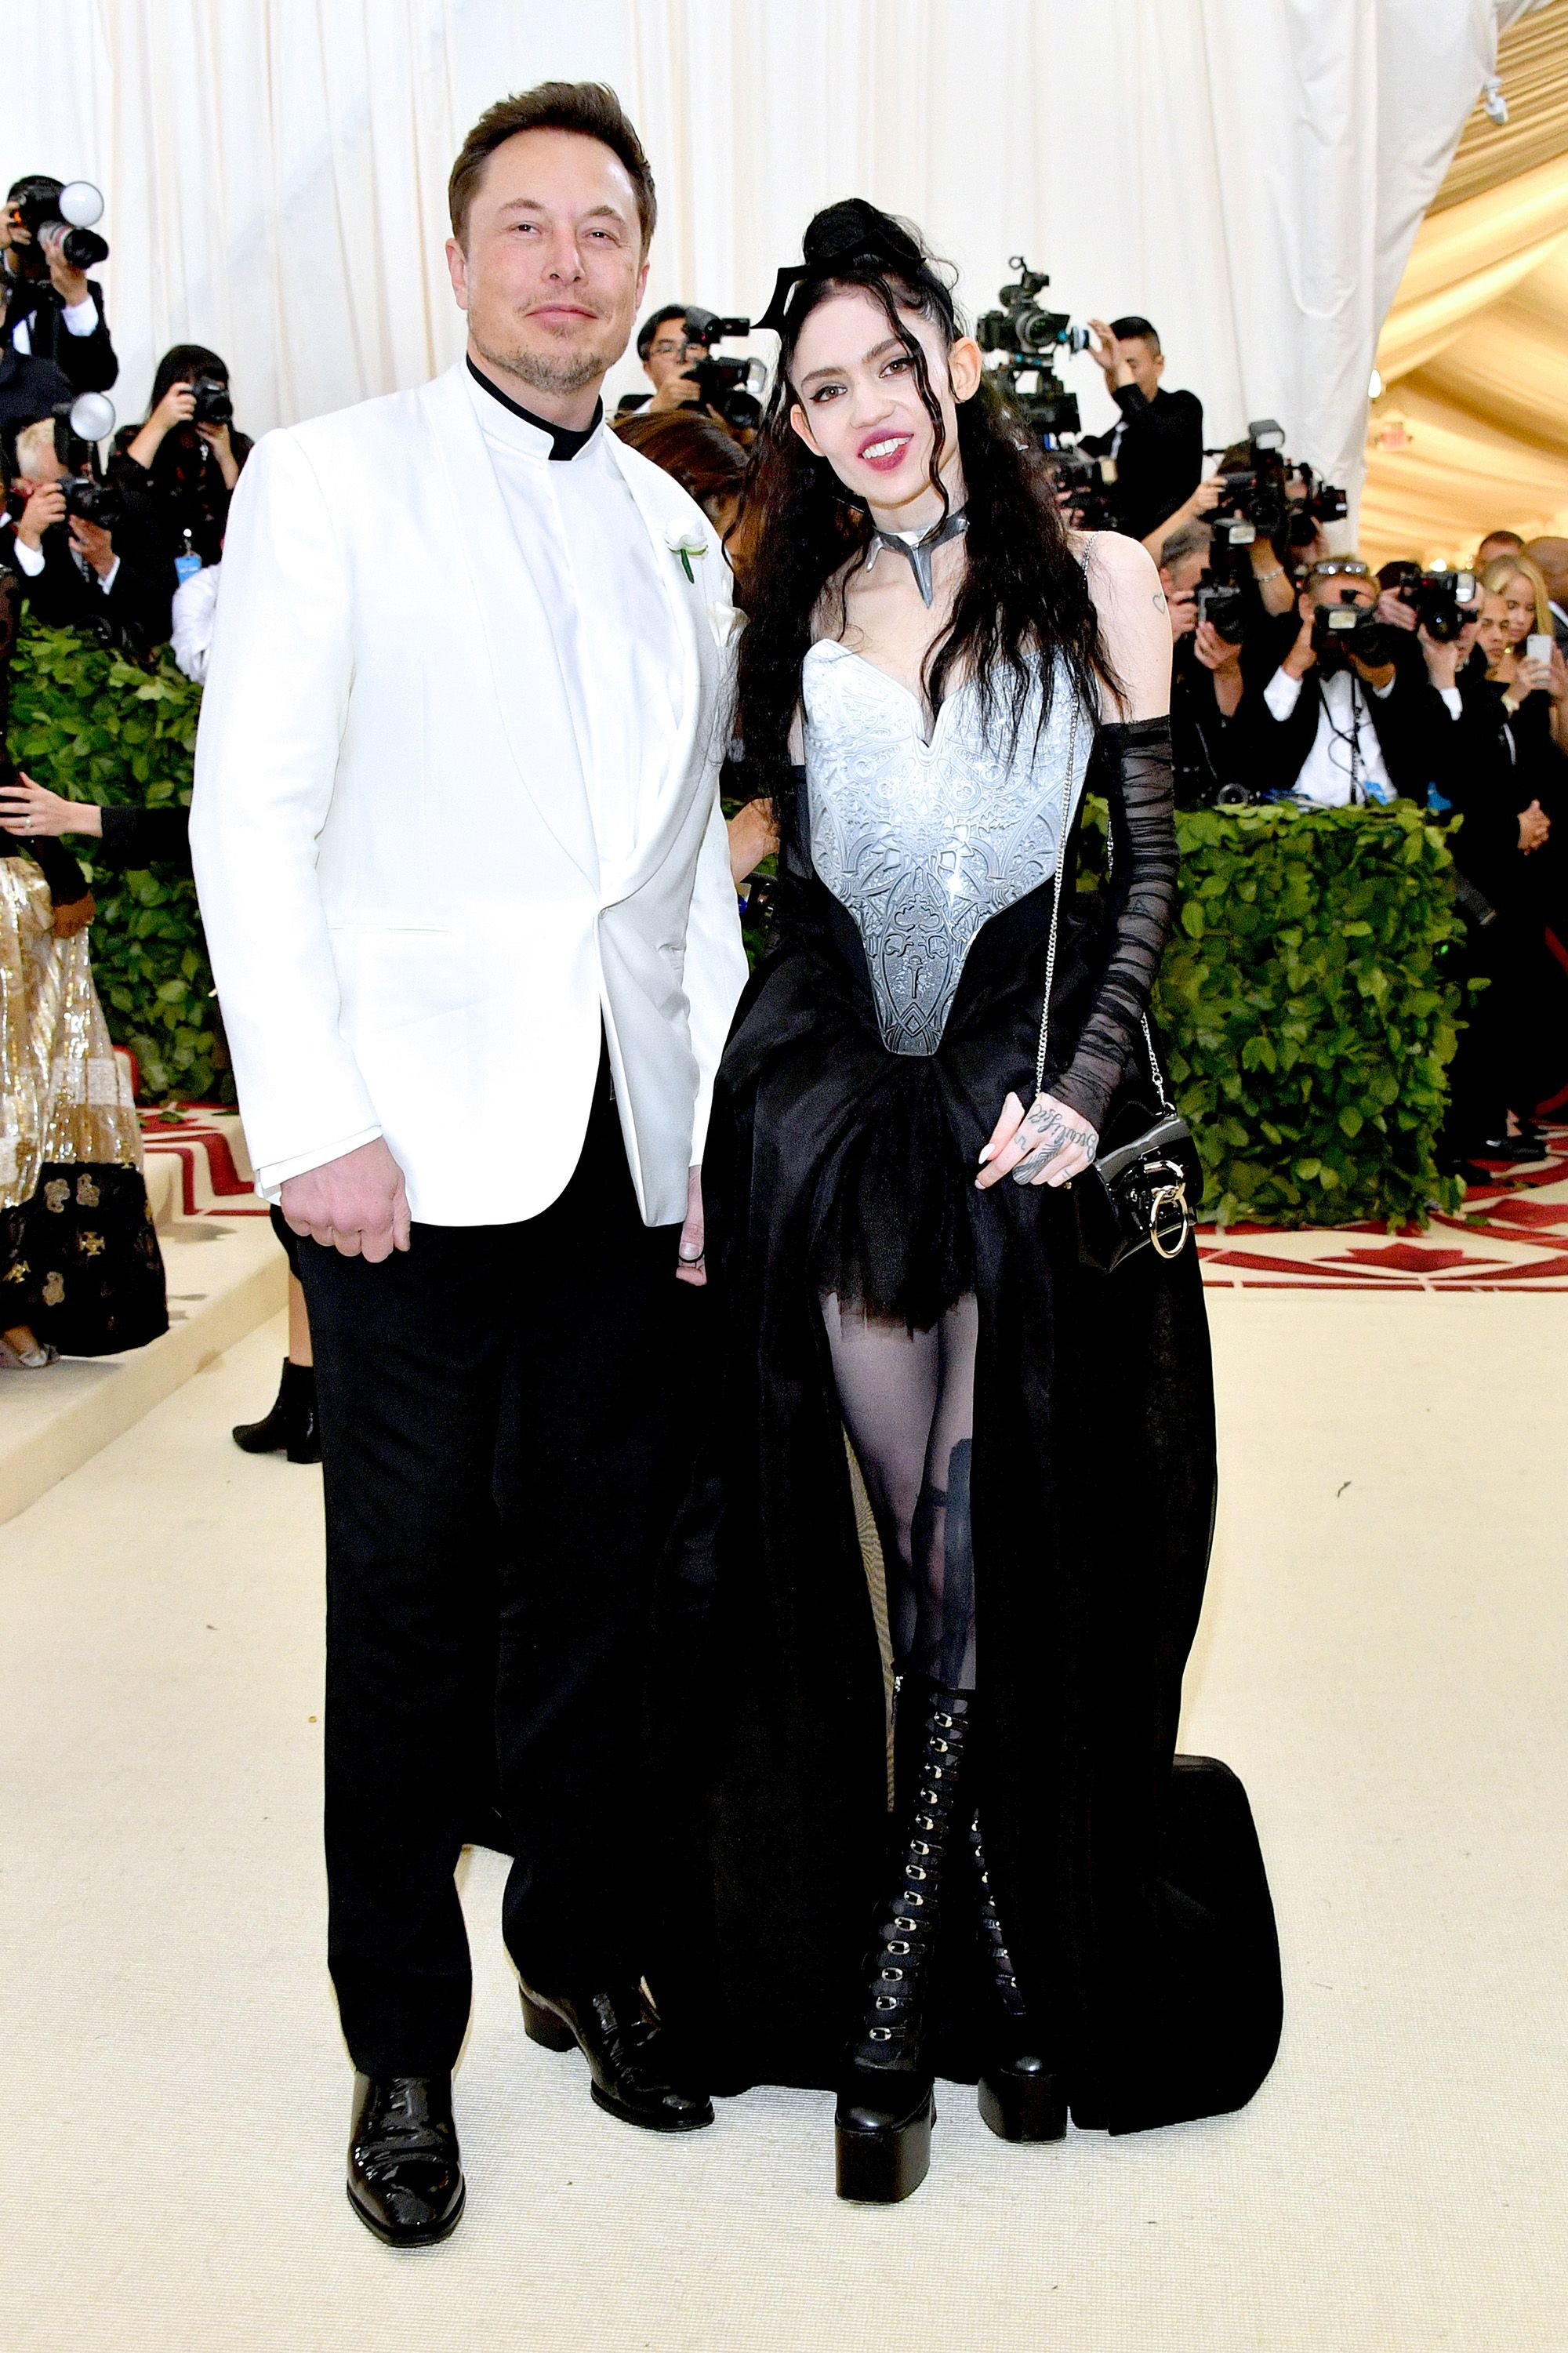 Who Is Elon Musk Takes New Girlfriend Grimes To Met Gala 2018 Image